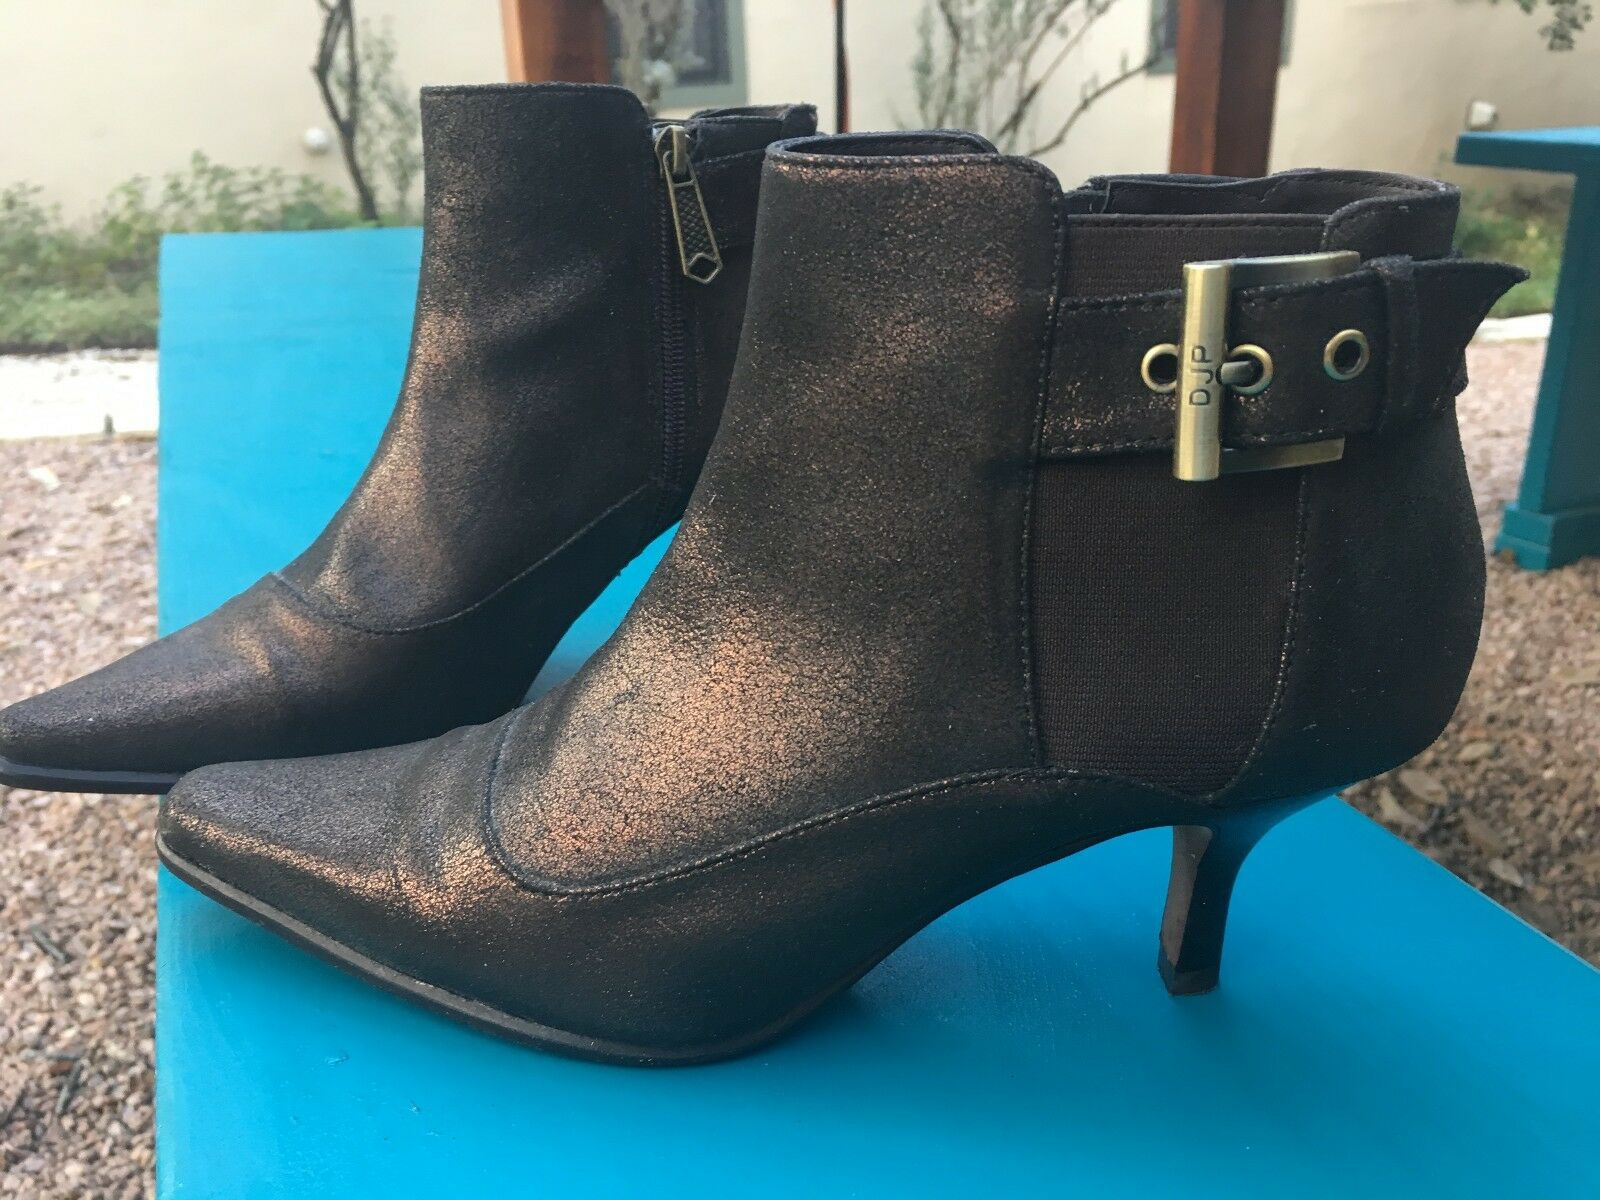 Donald j Pliner metallic leather pointed-toe ankle boots Sz 7 - gorgeous